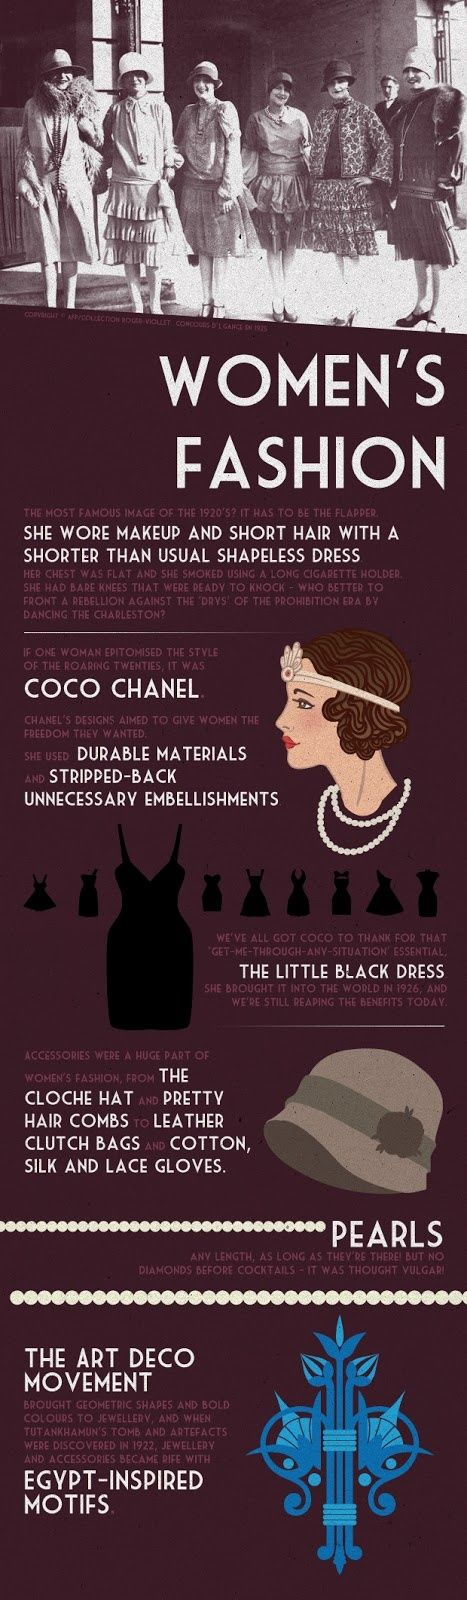 Get the great gatsby fashion look...good to know